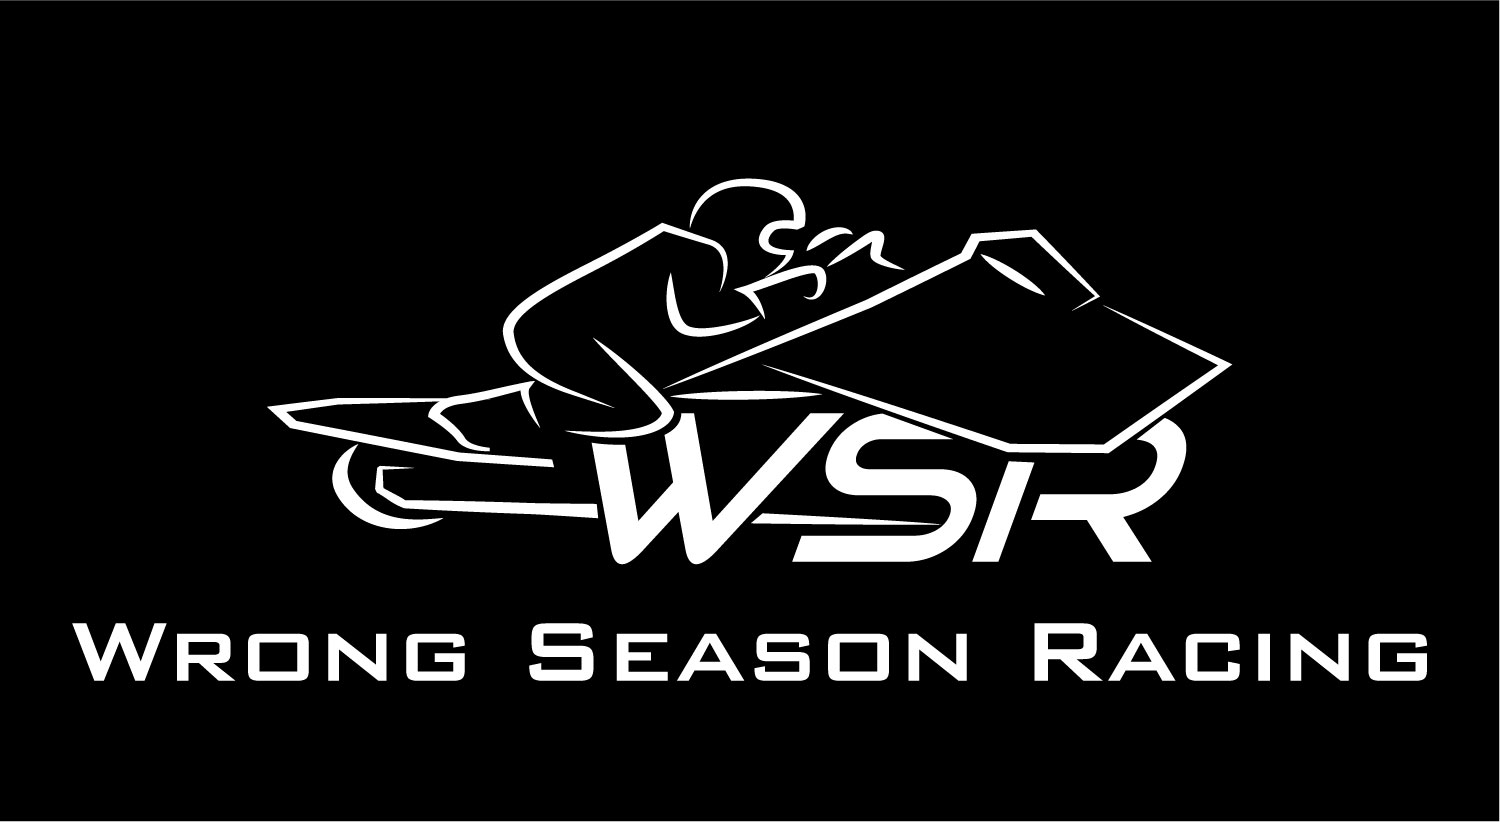 Wrong Season Racing